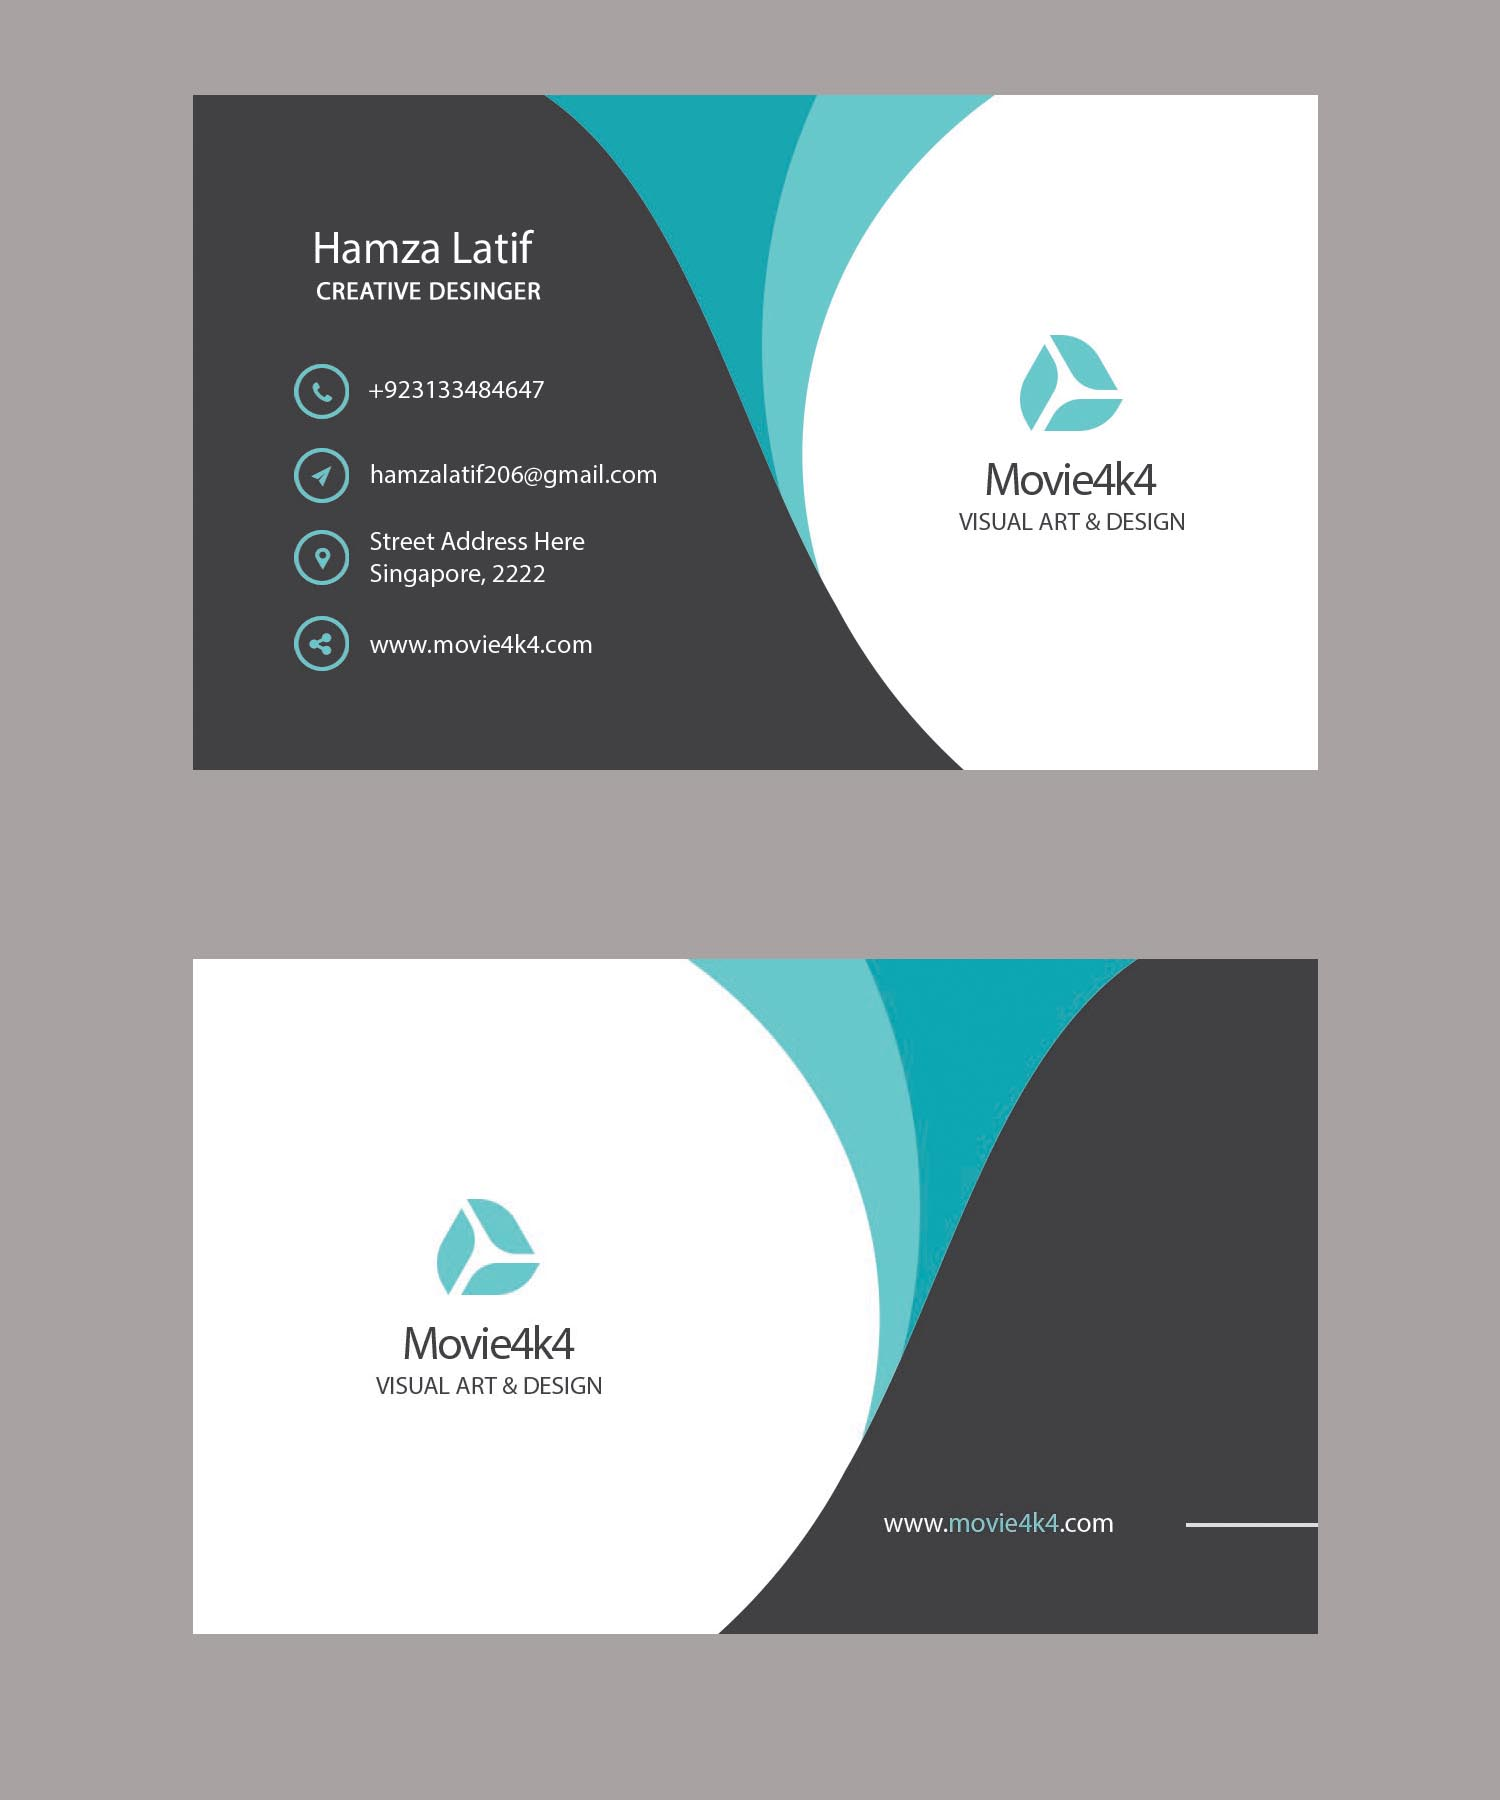 Design 3 Unique & Stylish Business Cards with PSD Source for $5 ...